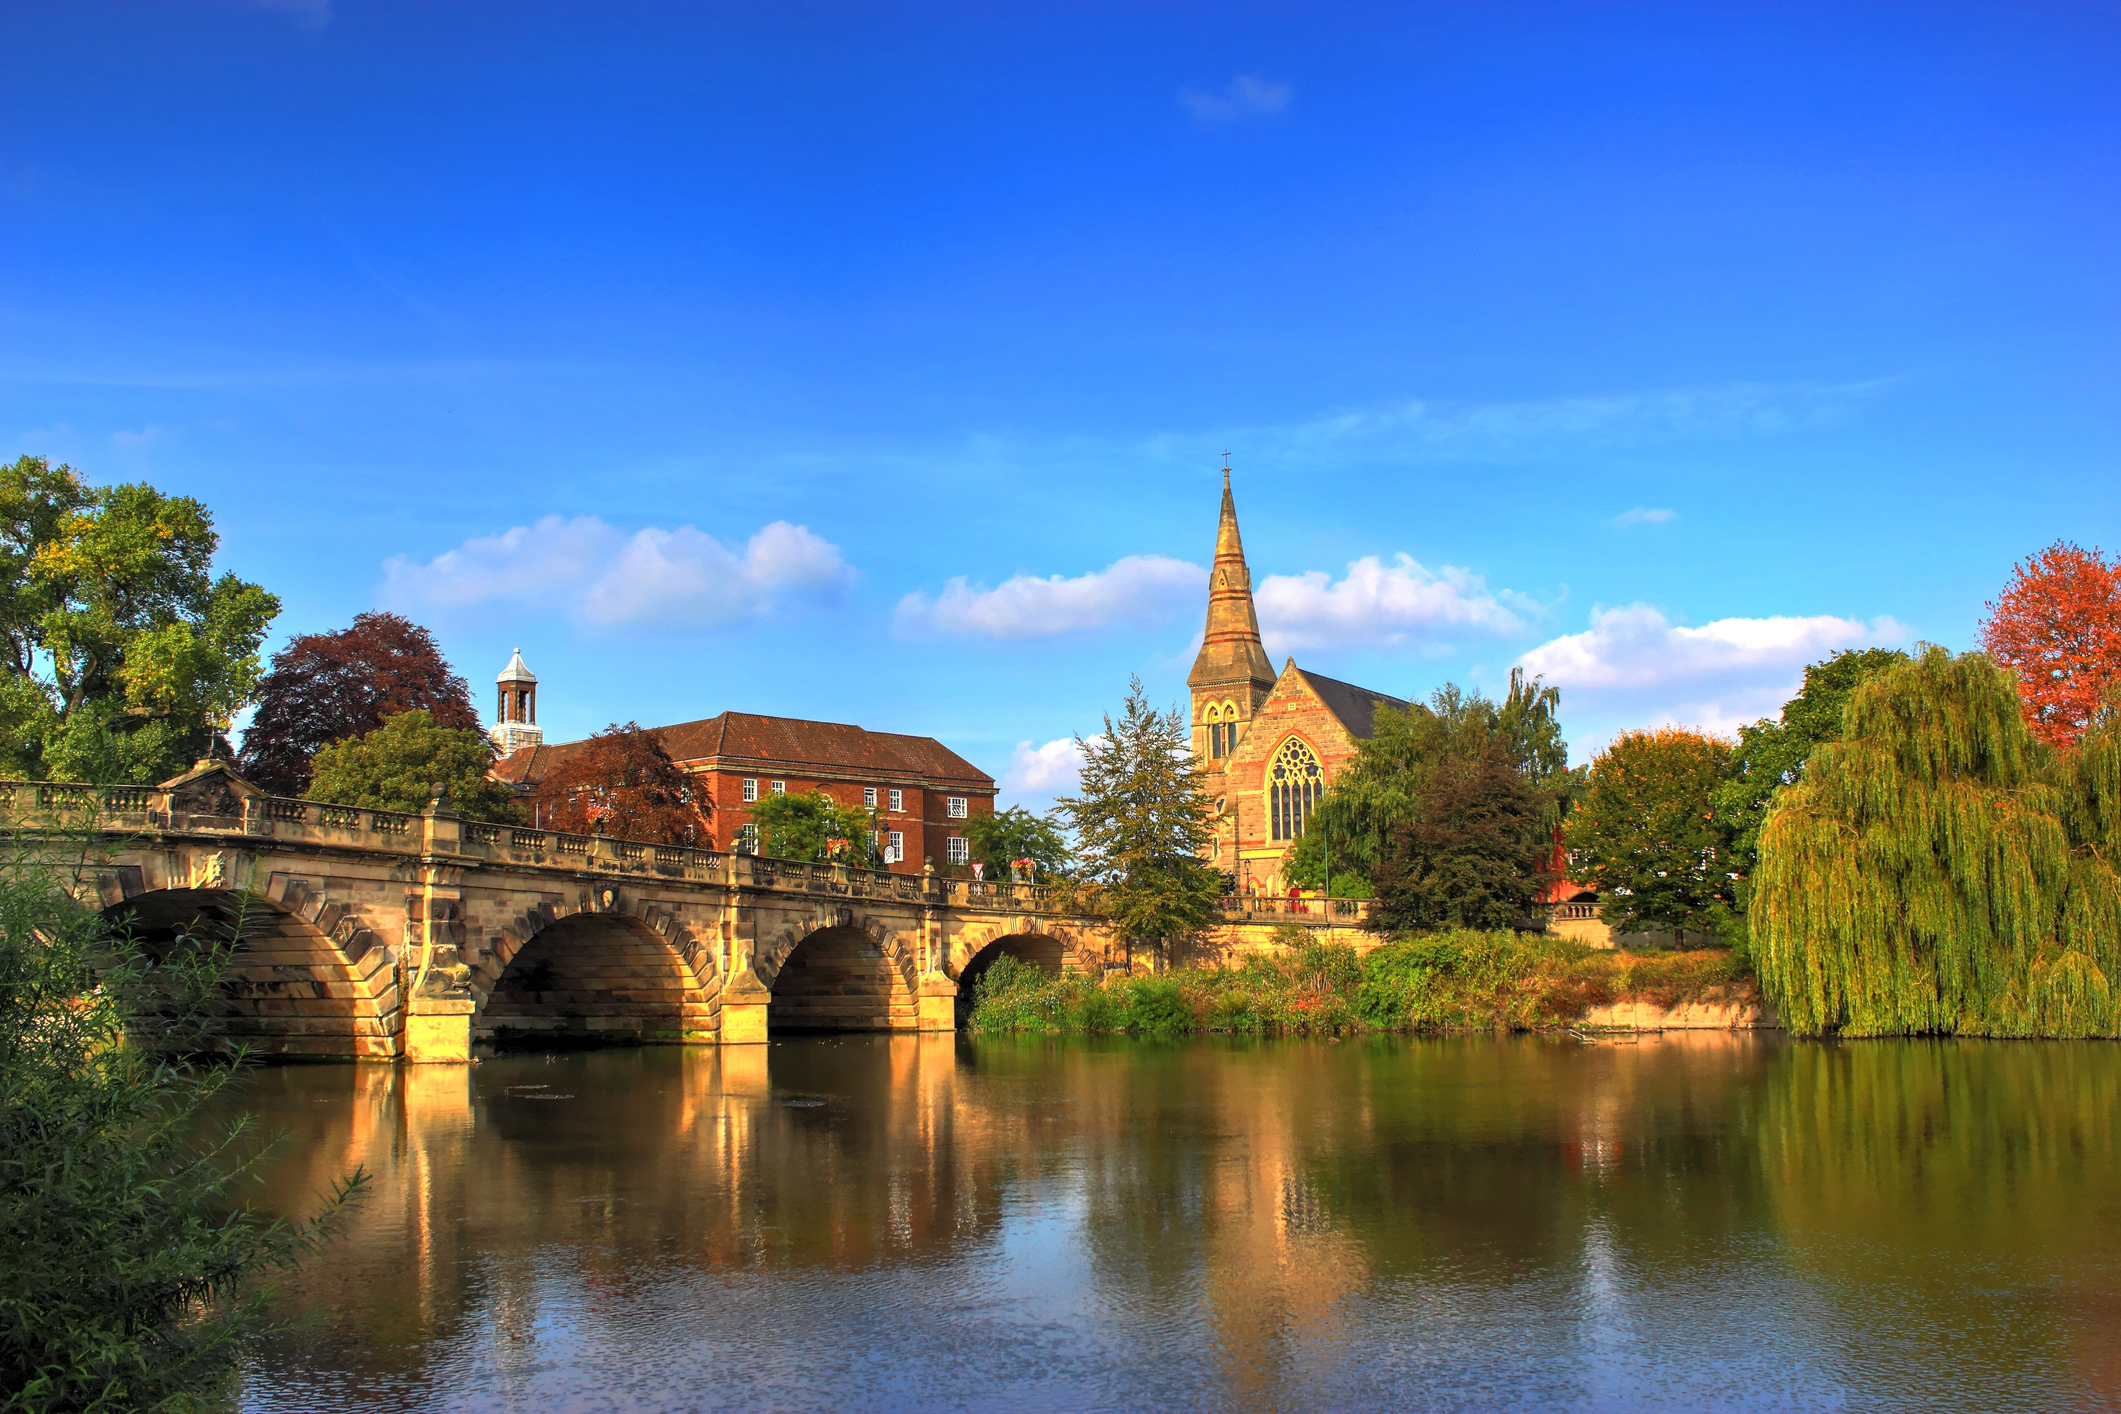 Bridge over the river Severn in Shrewsbury